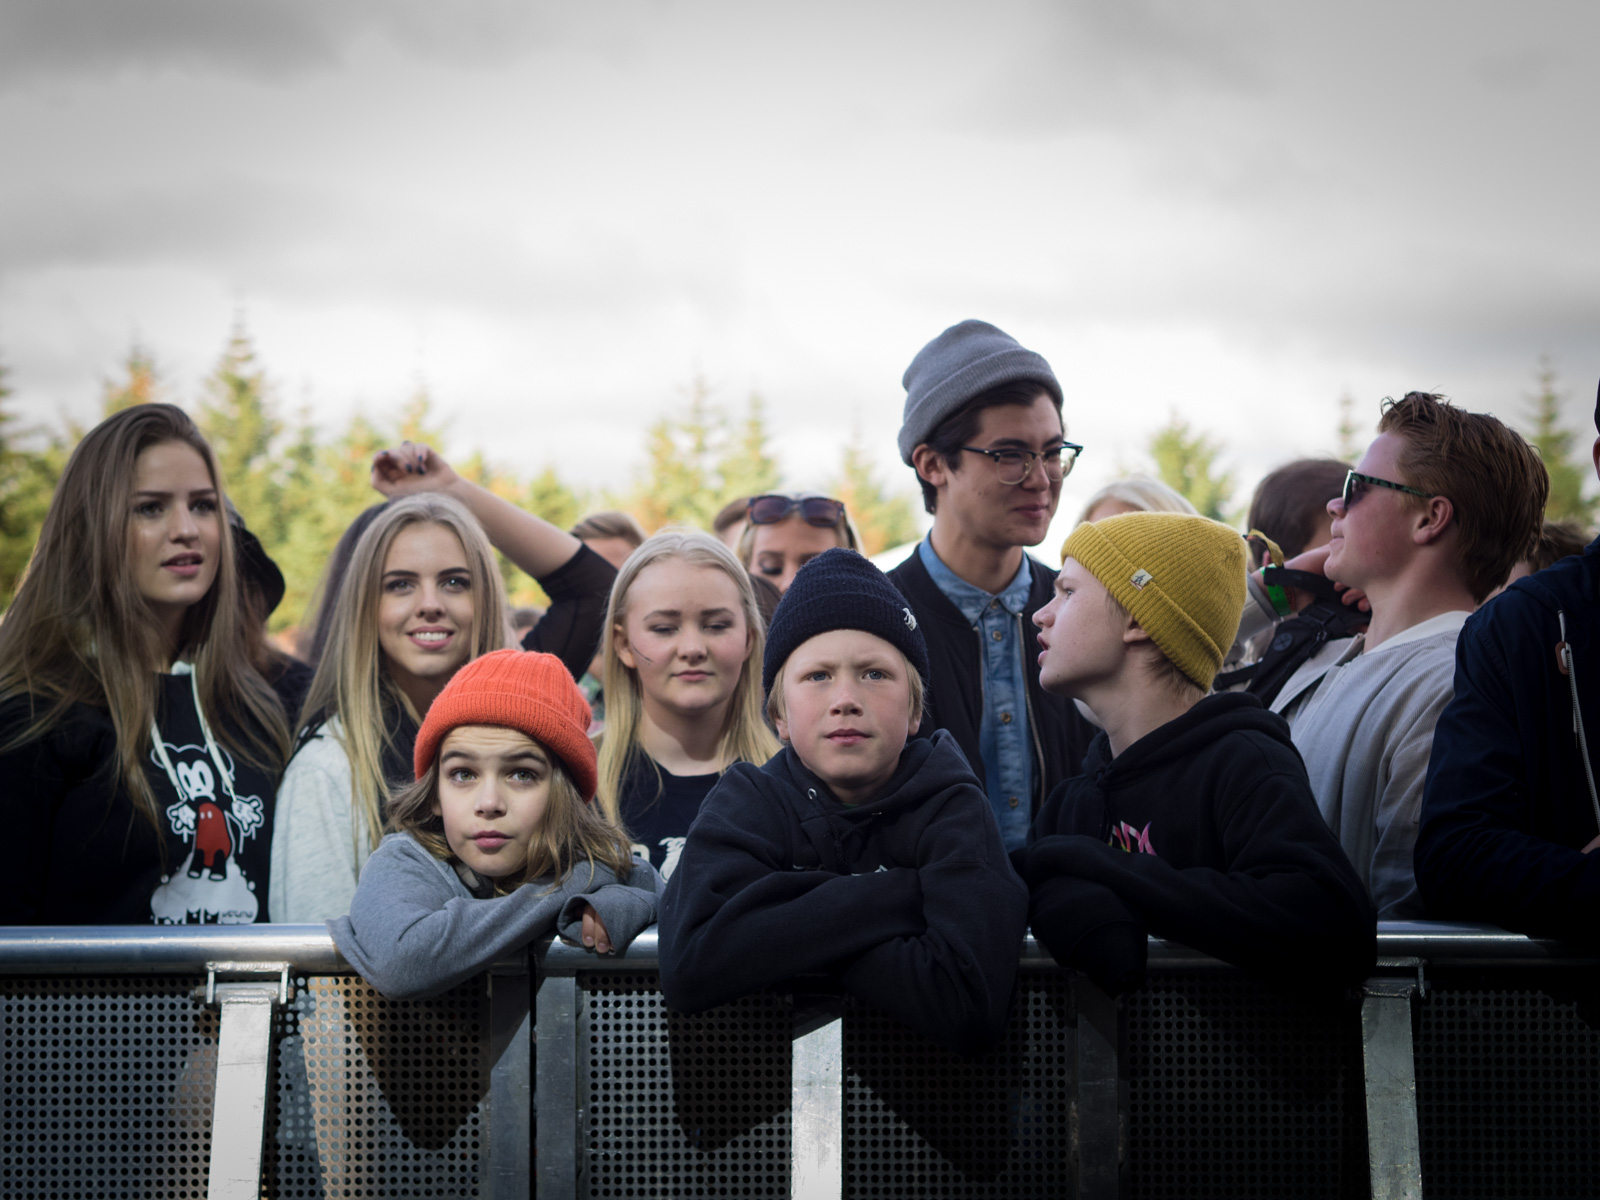 Last Seen: Secret Solstice Music Festival, Reykjavik, Iceland 2014